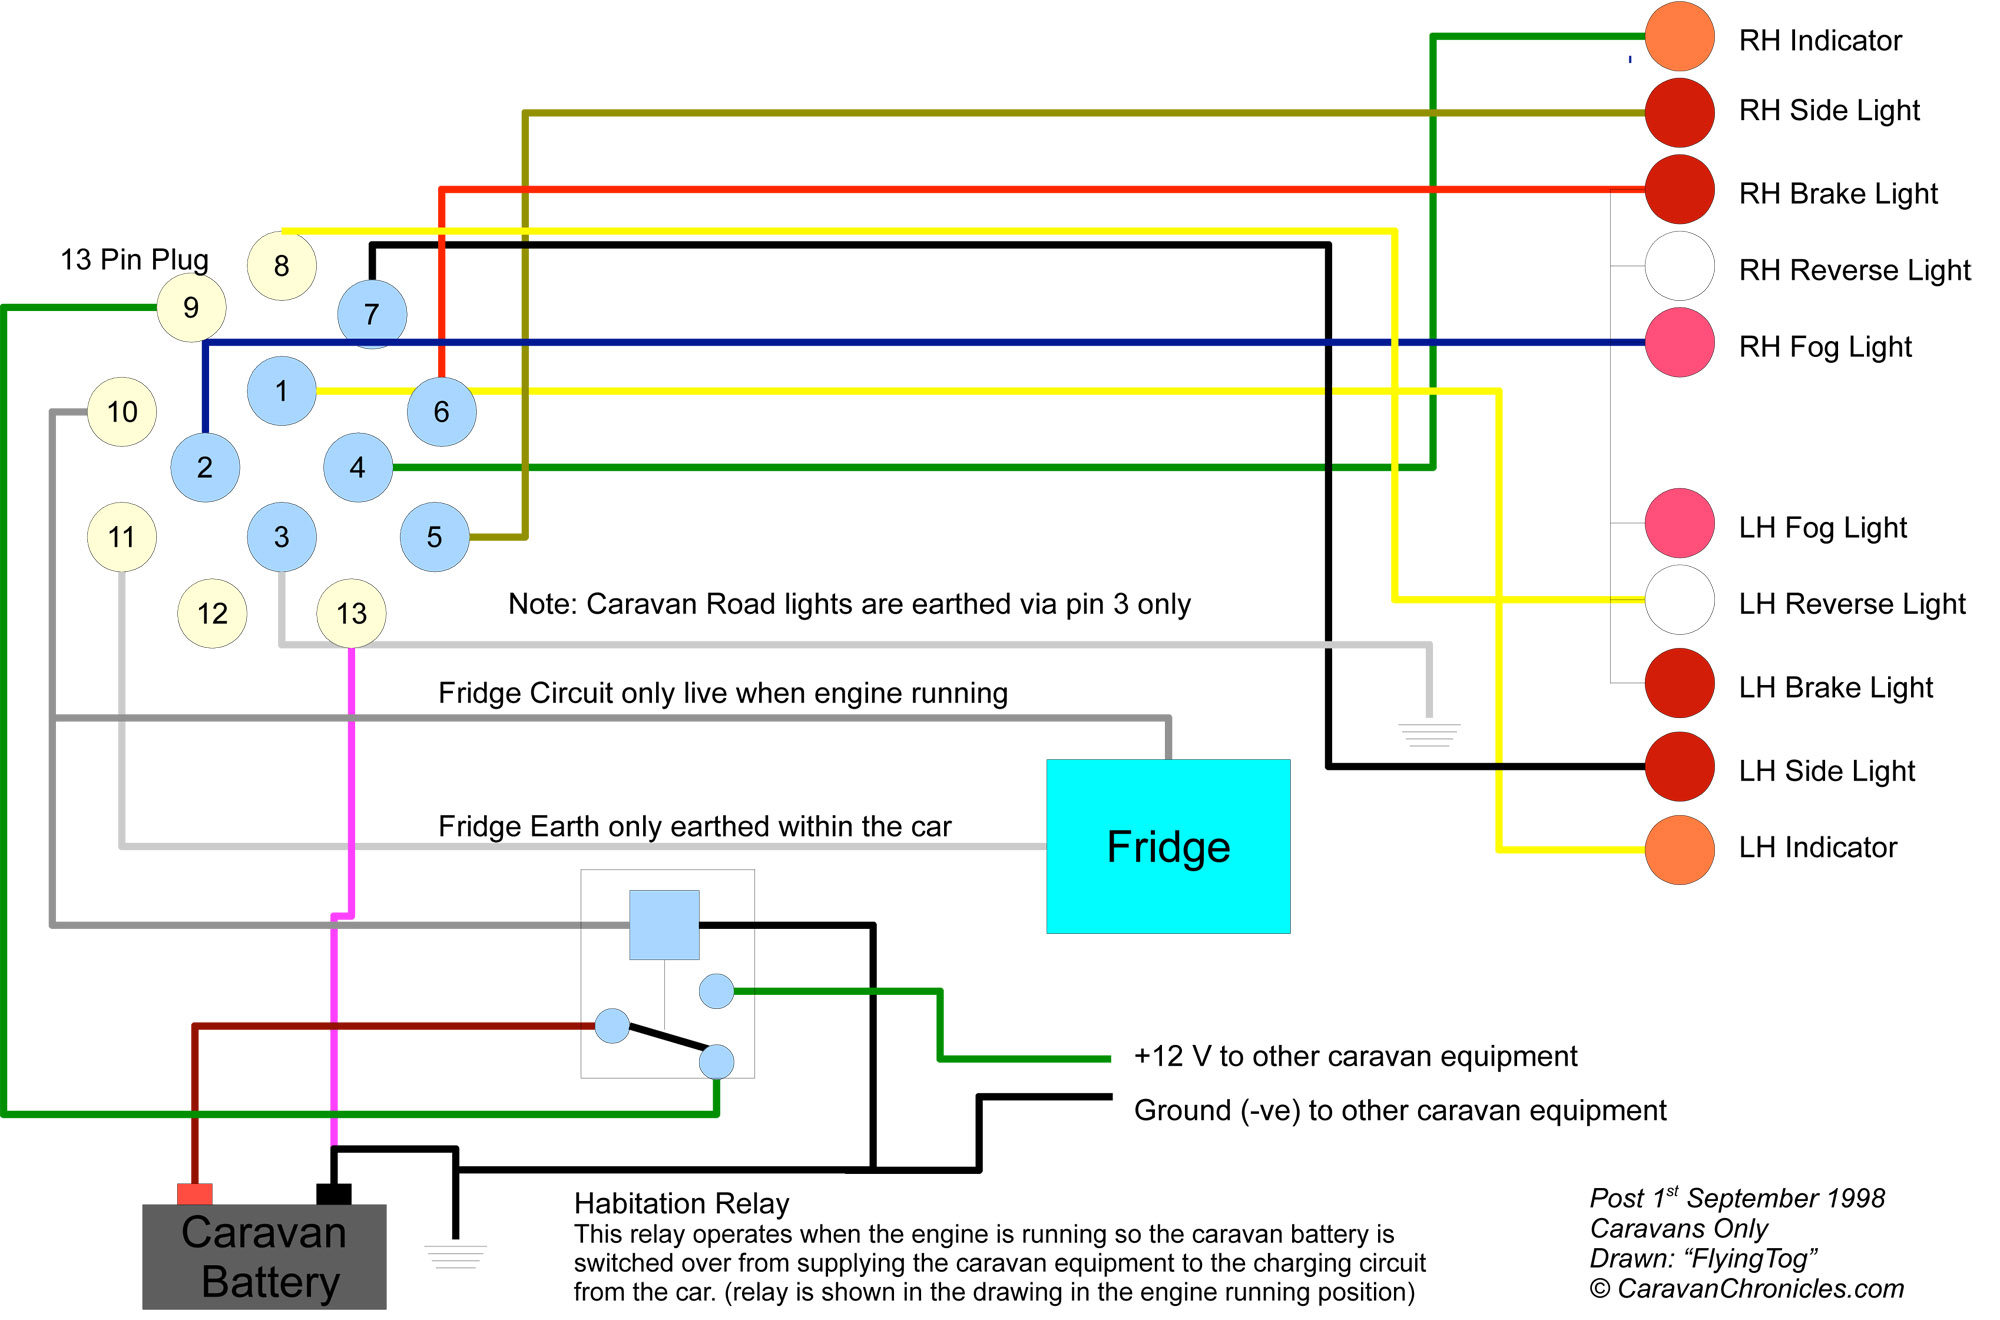 caravan wiring 13 pin understanding caravan and tow car electrics caravan chronicles ford transit towbar wiring diagram at creativeand.co